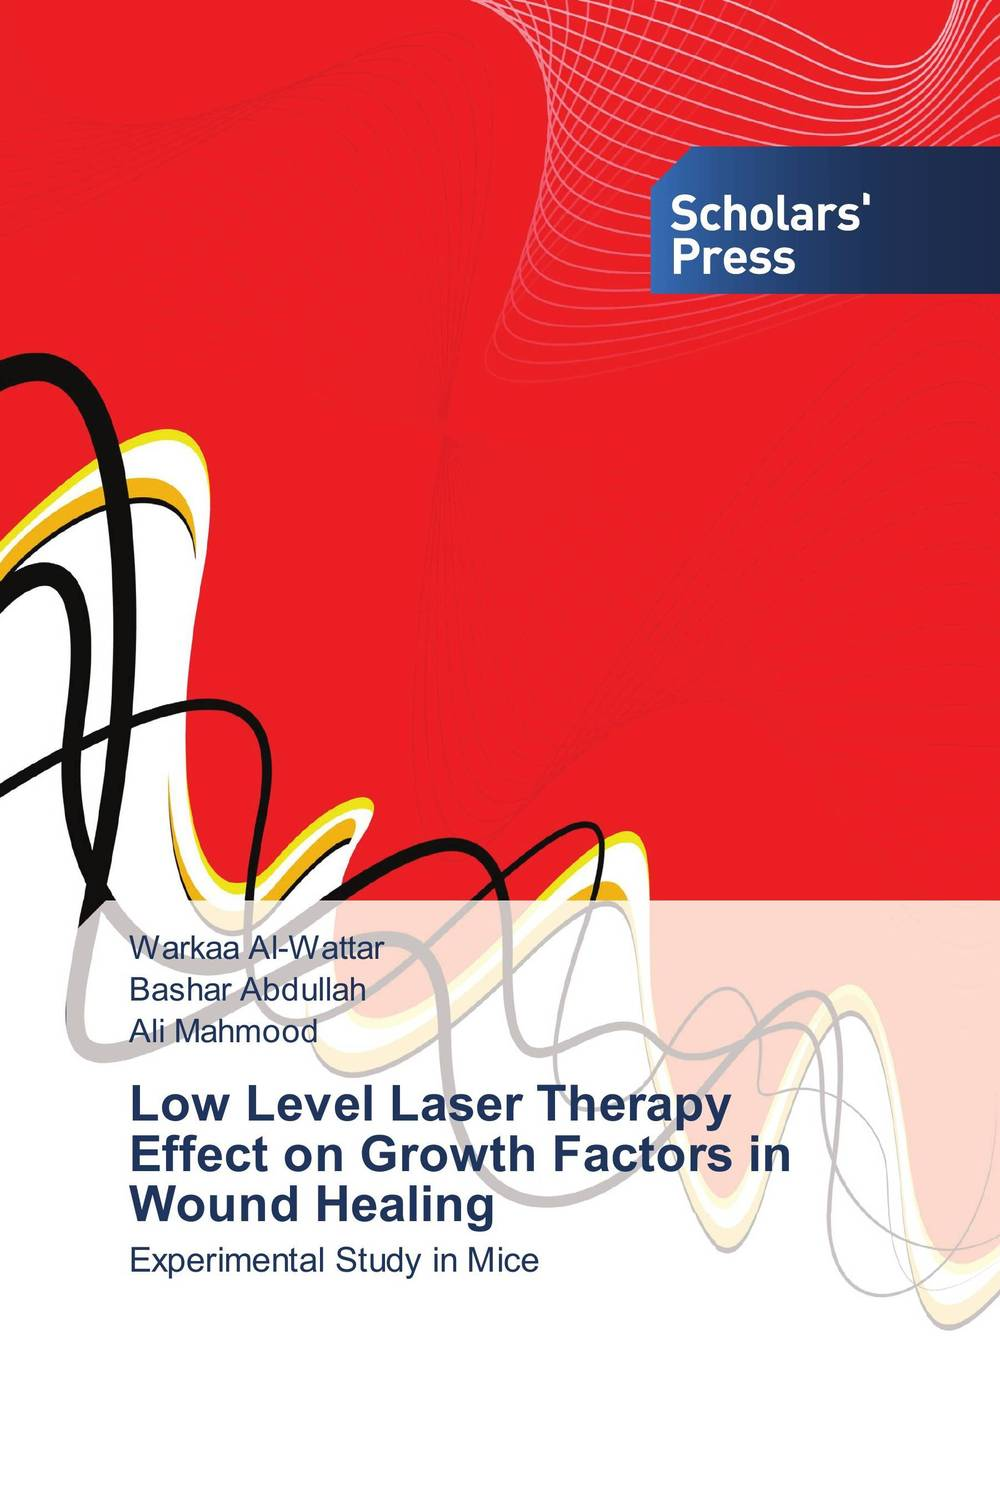 Low Level Laser Therapy Effect on Growth Factors in Wound Healing